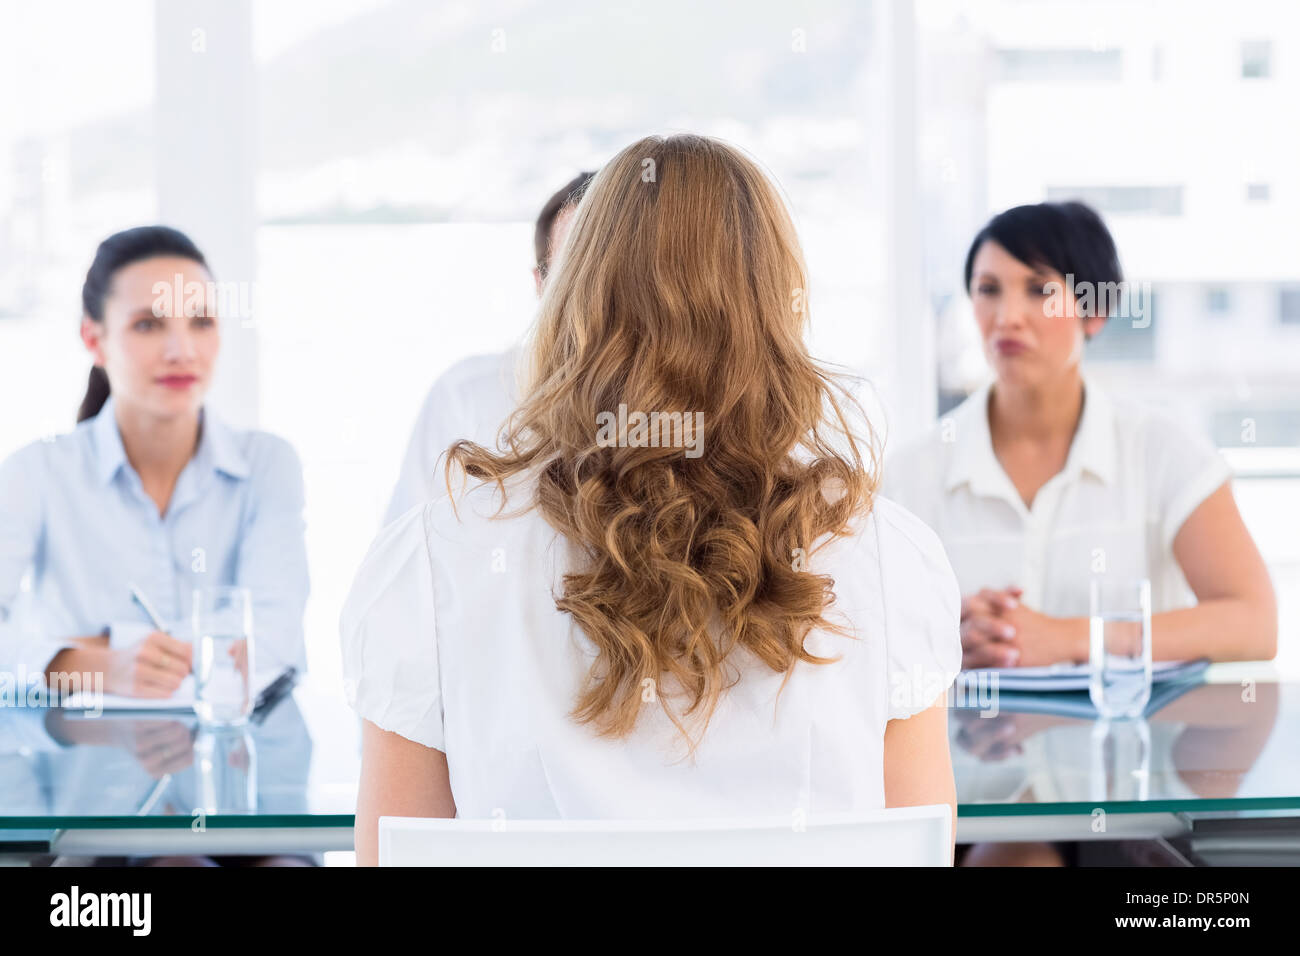 Recruiters checking the candidate during job interview - Stock Image